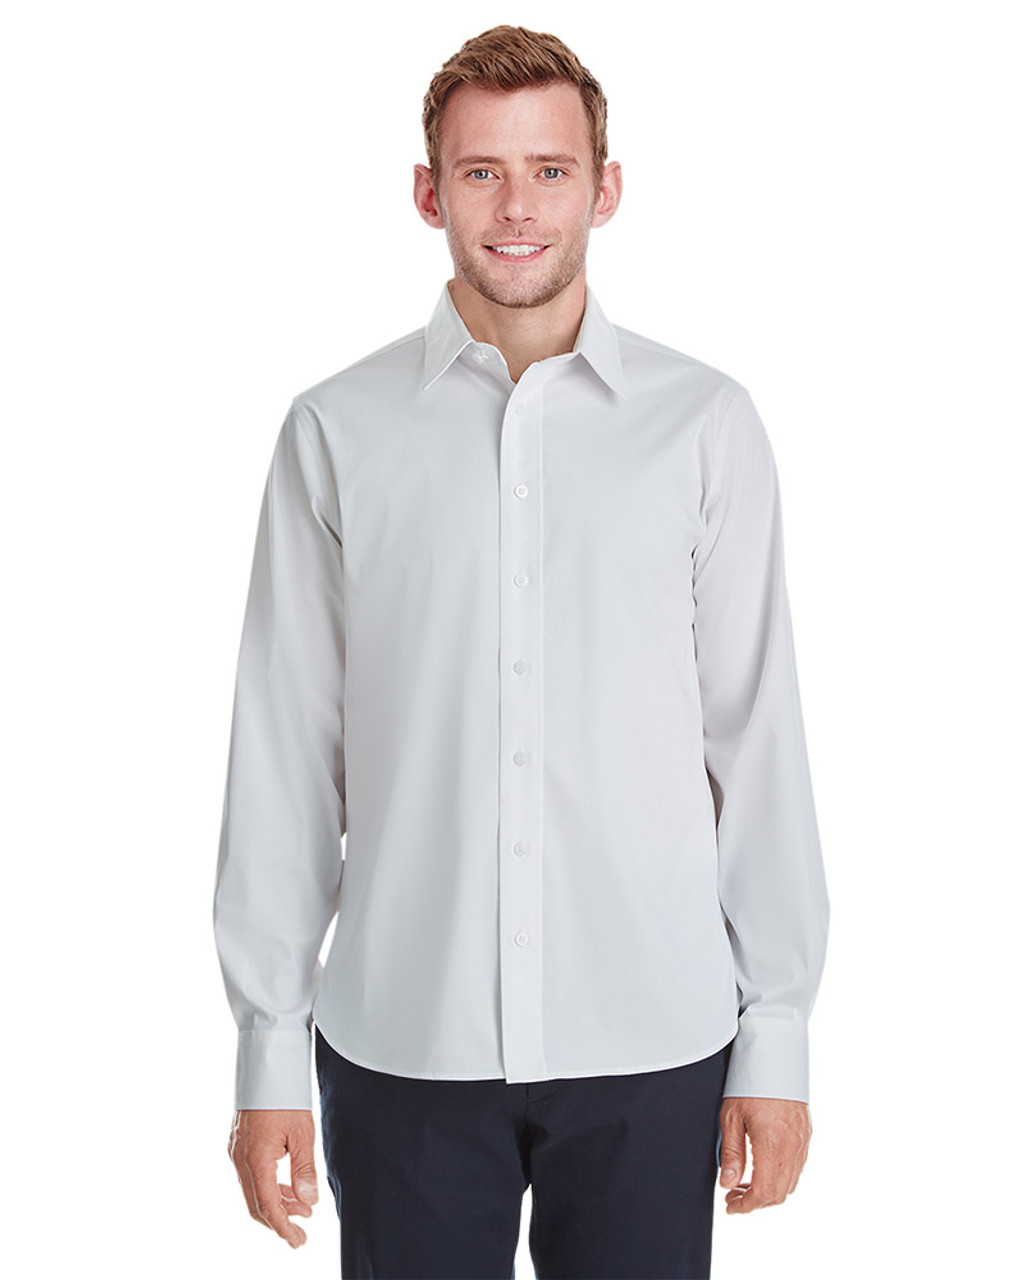 White - DG561 Devon & Jones Men's Crown Collection™ Stretch Broadcloth Untucked Shirt | Blankclothing.ca